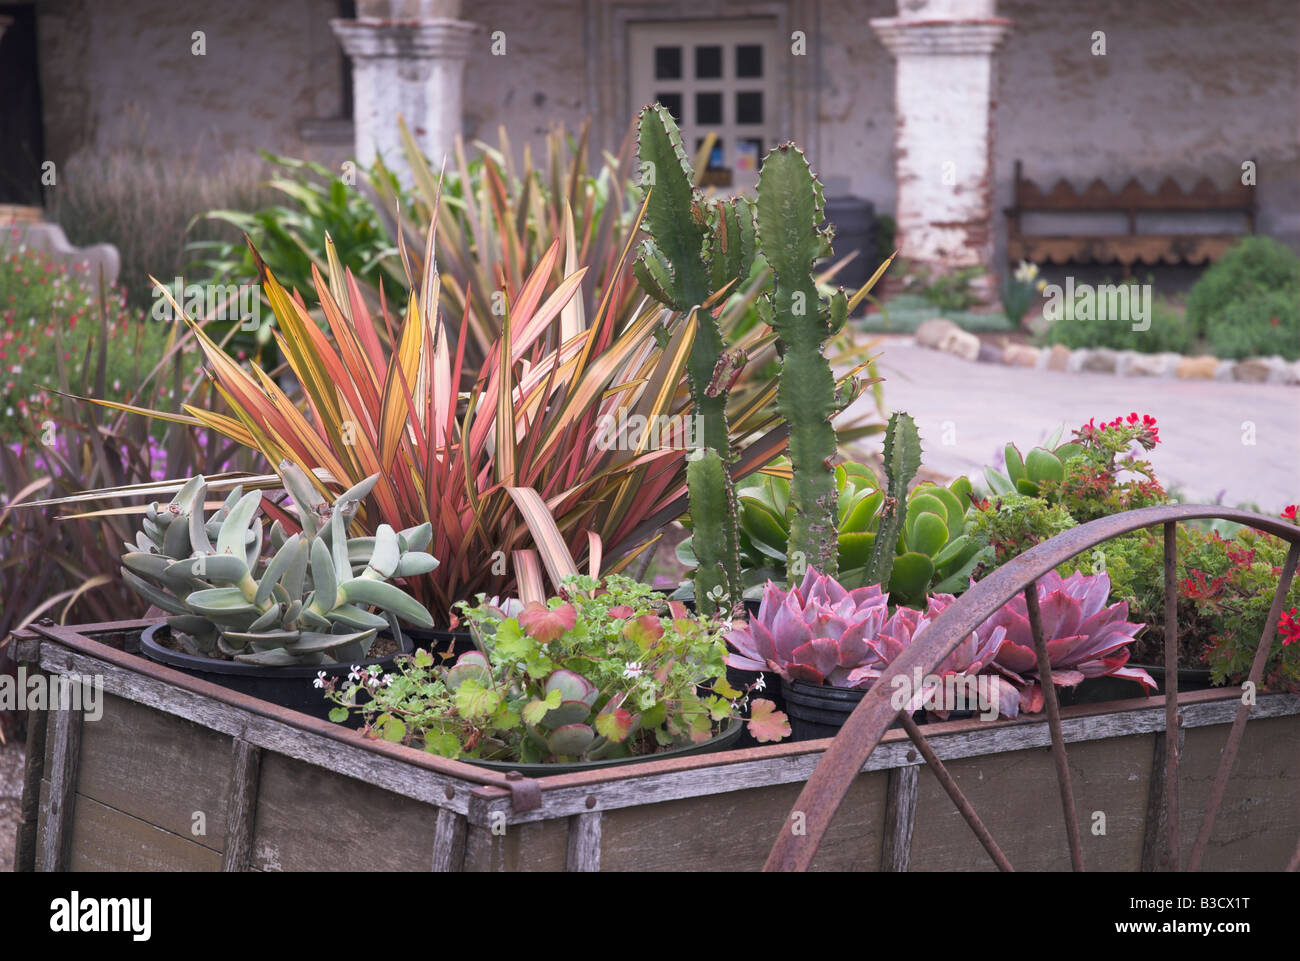 Wagon of desert plants at San Juan Capistrano - Stock Image